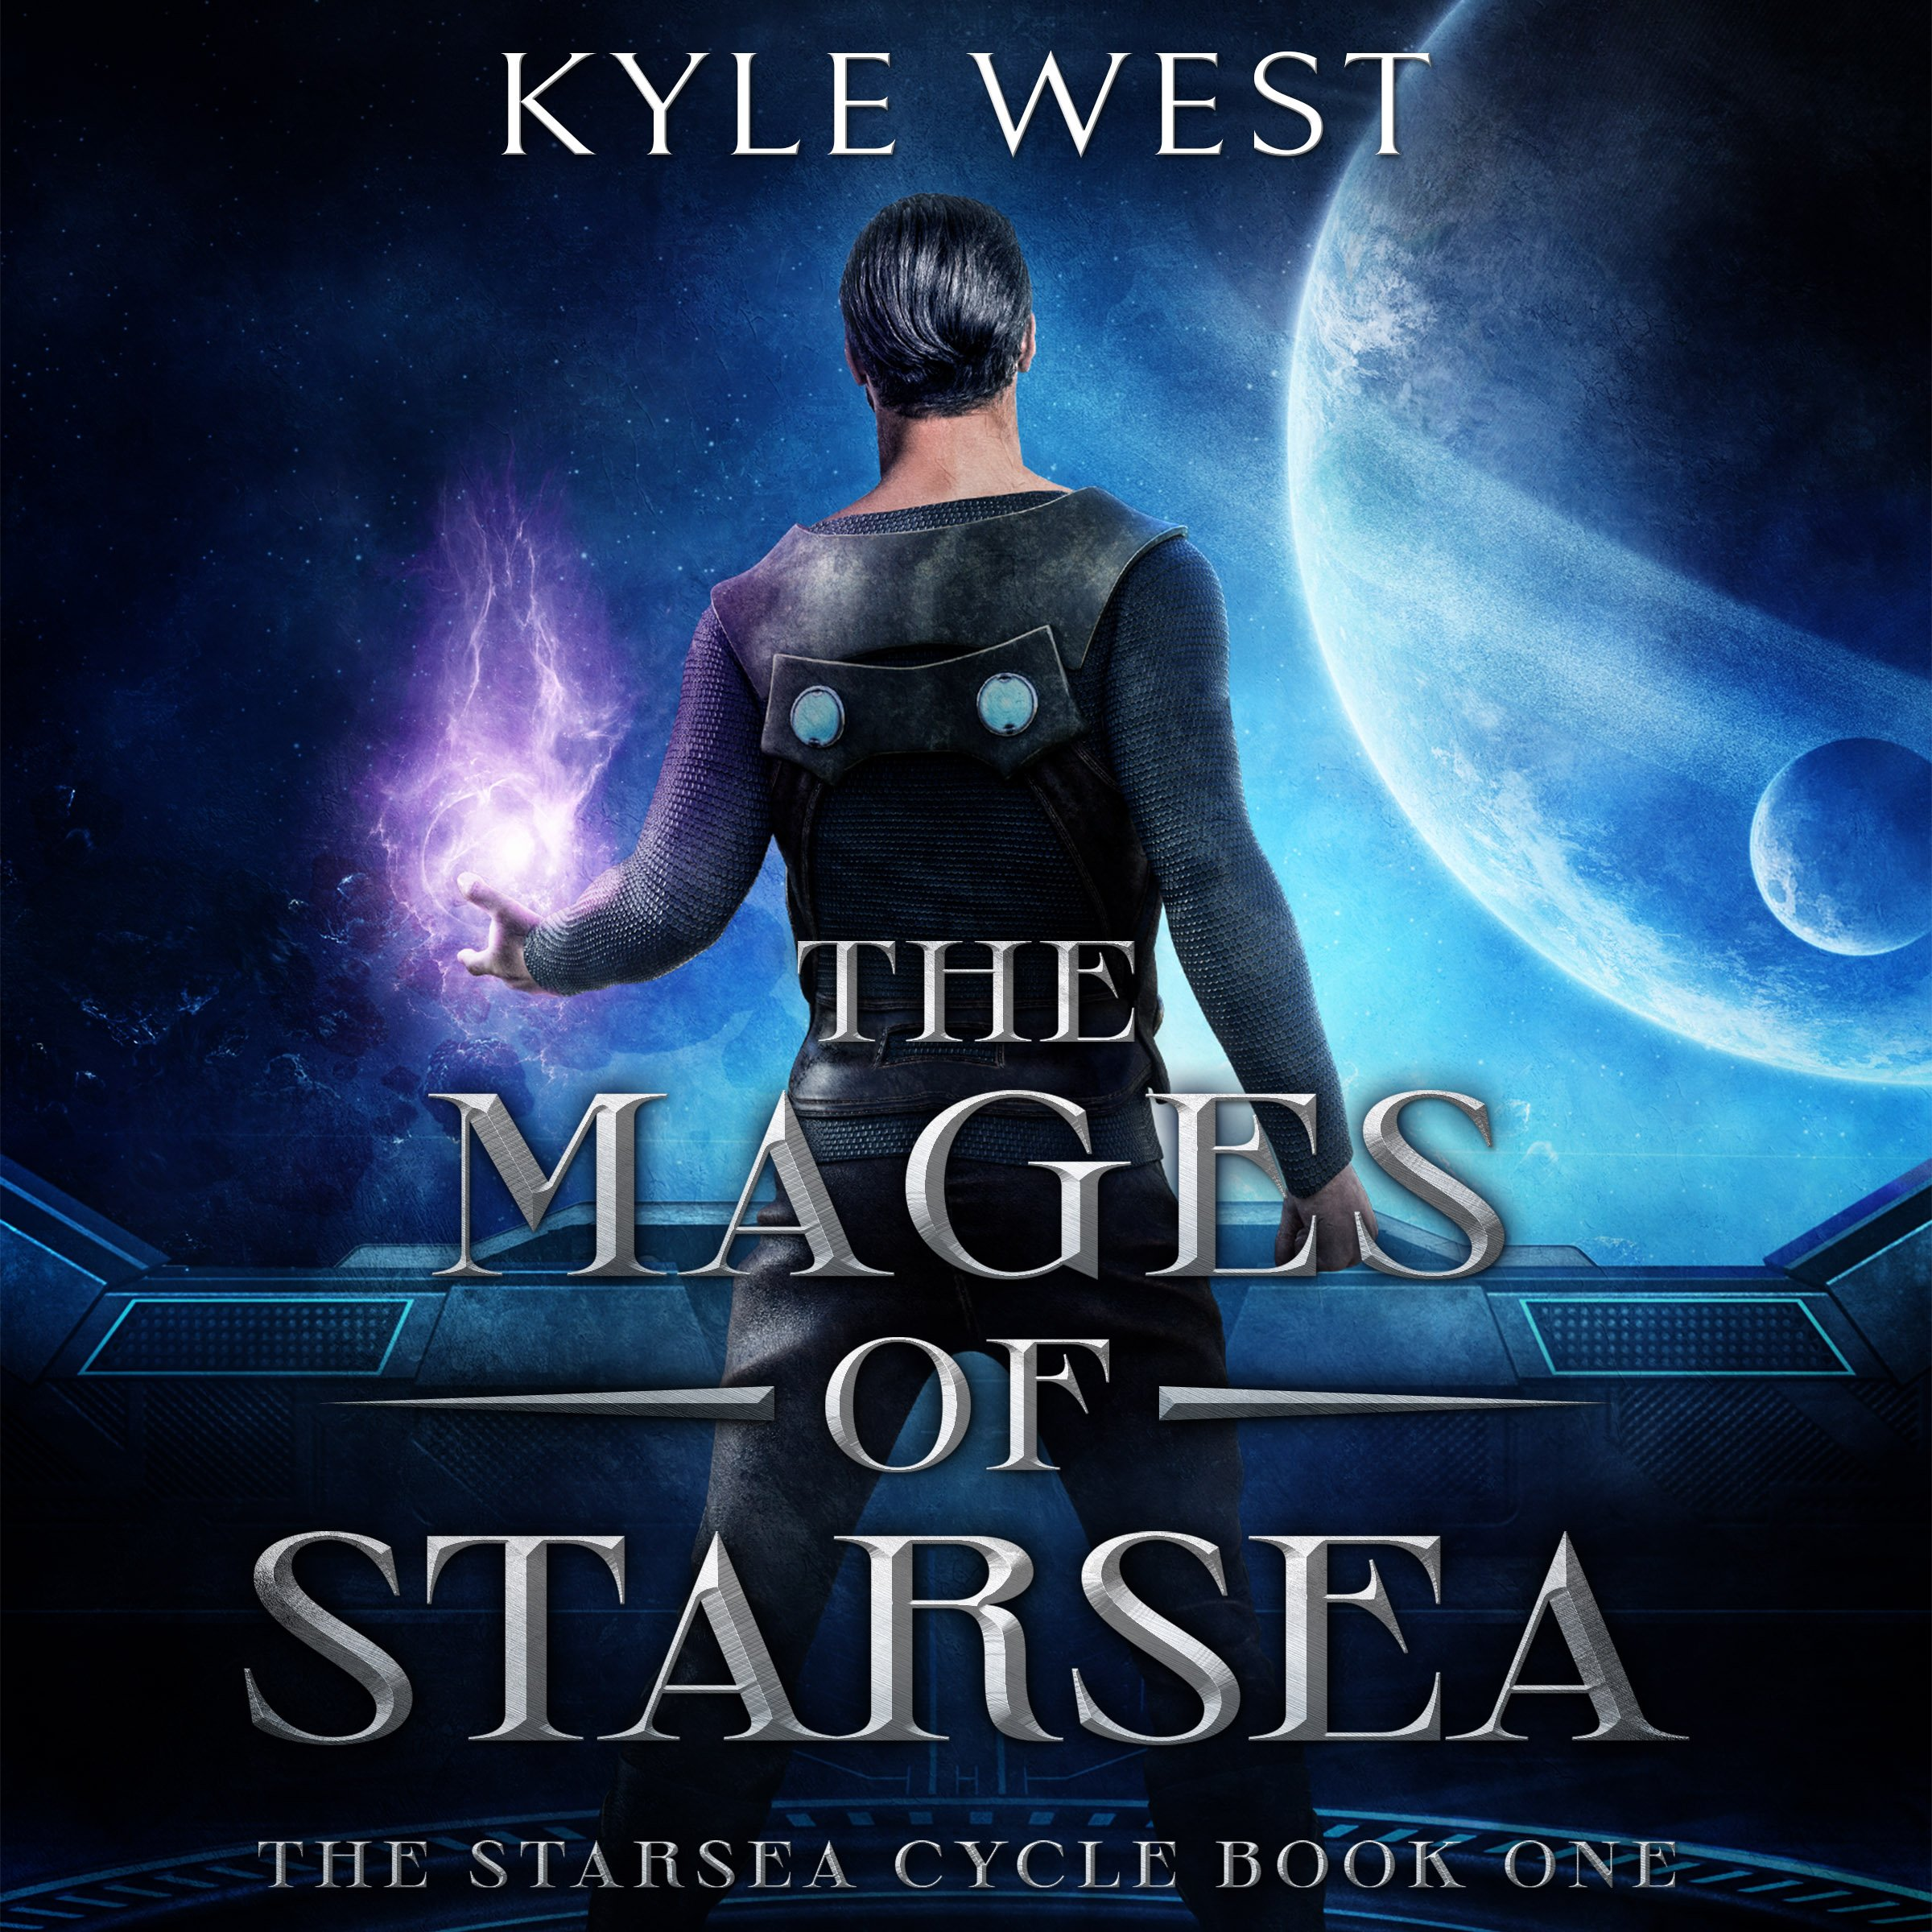 Starsea Cycle coming to audio!